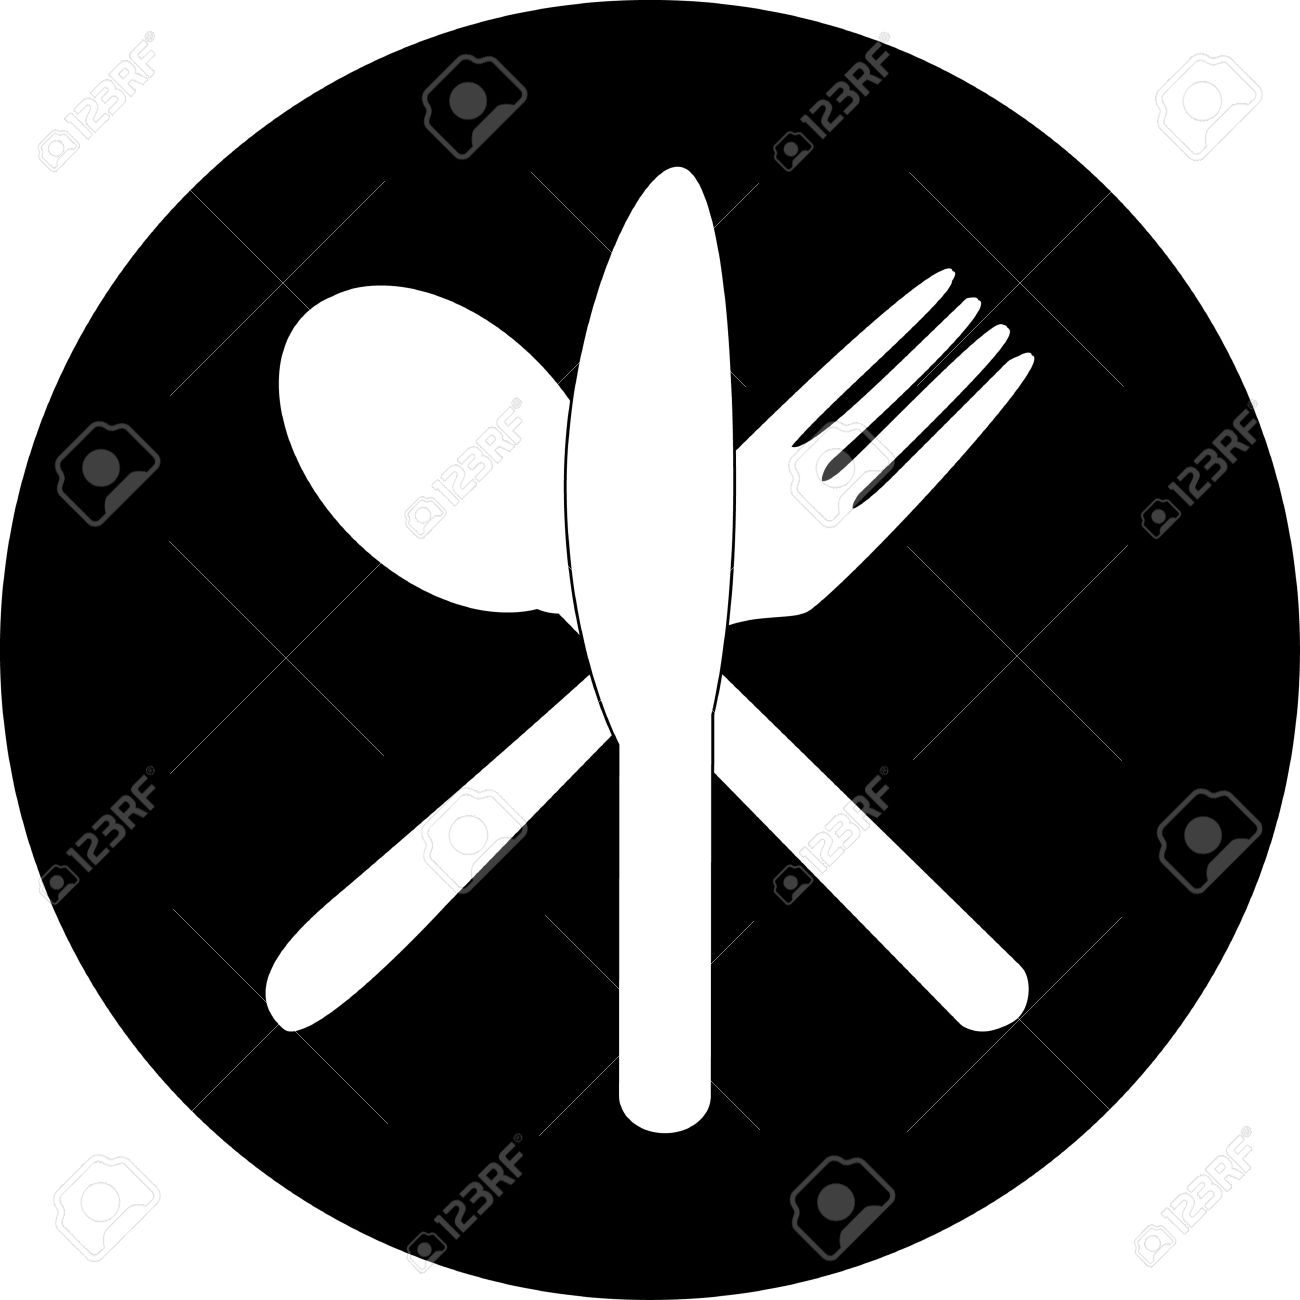 Knife Fork Spoon Silhouette at GetDrawings com | Free for personal